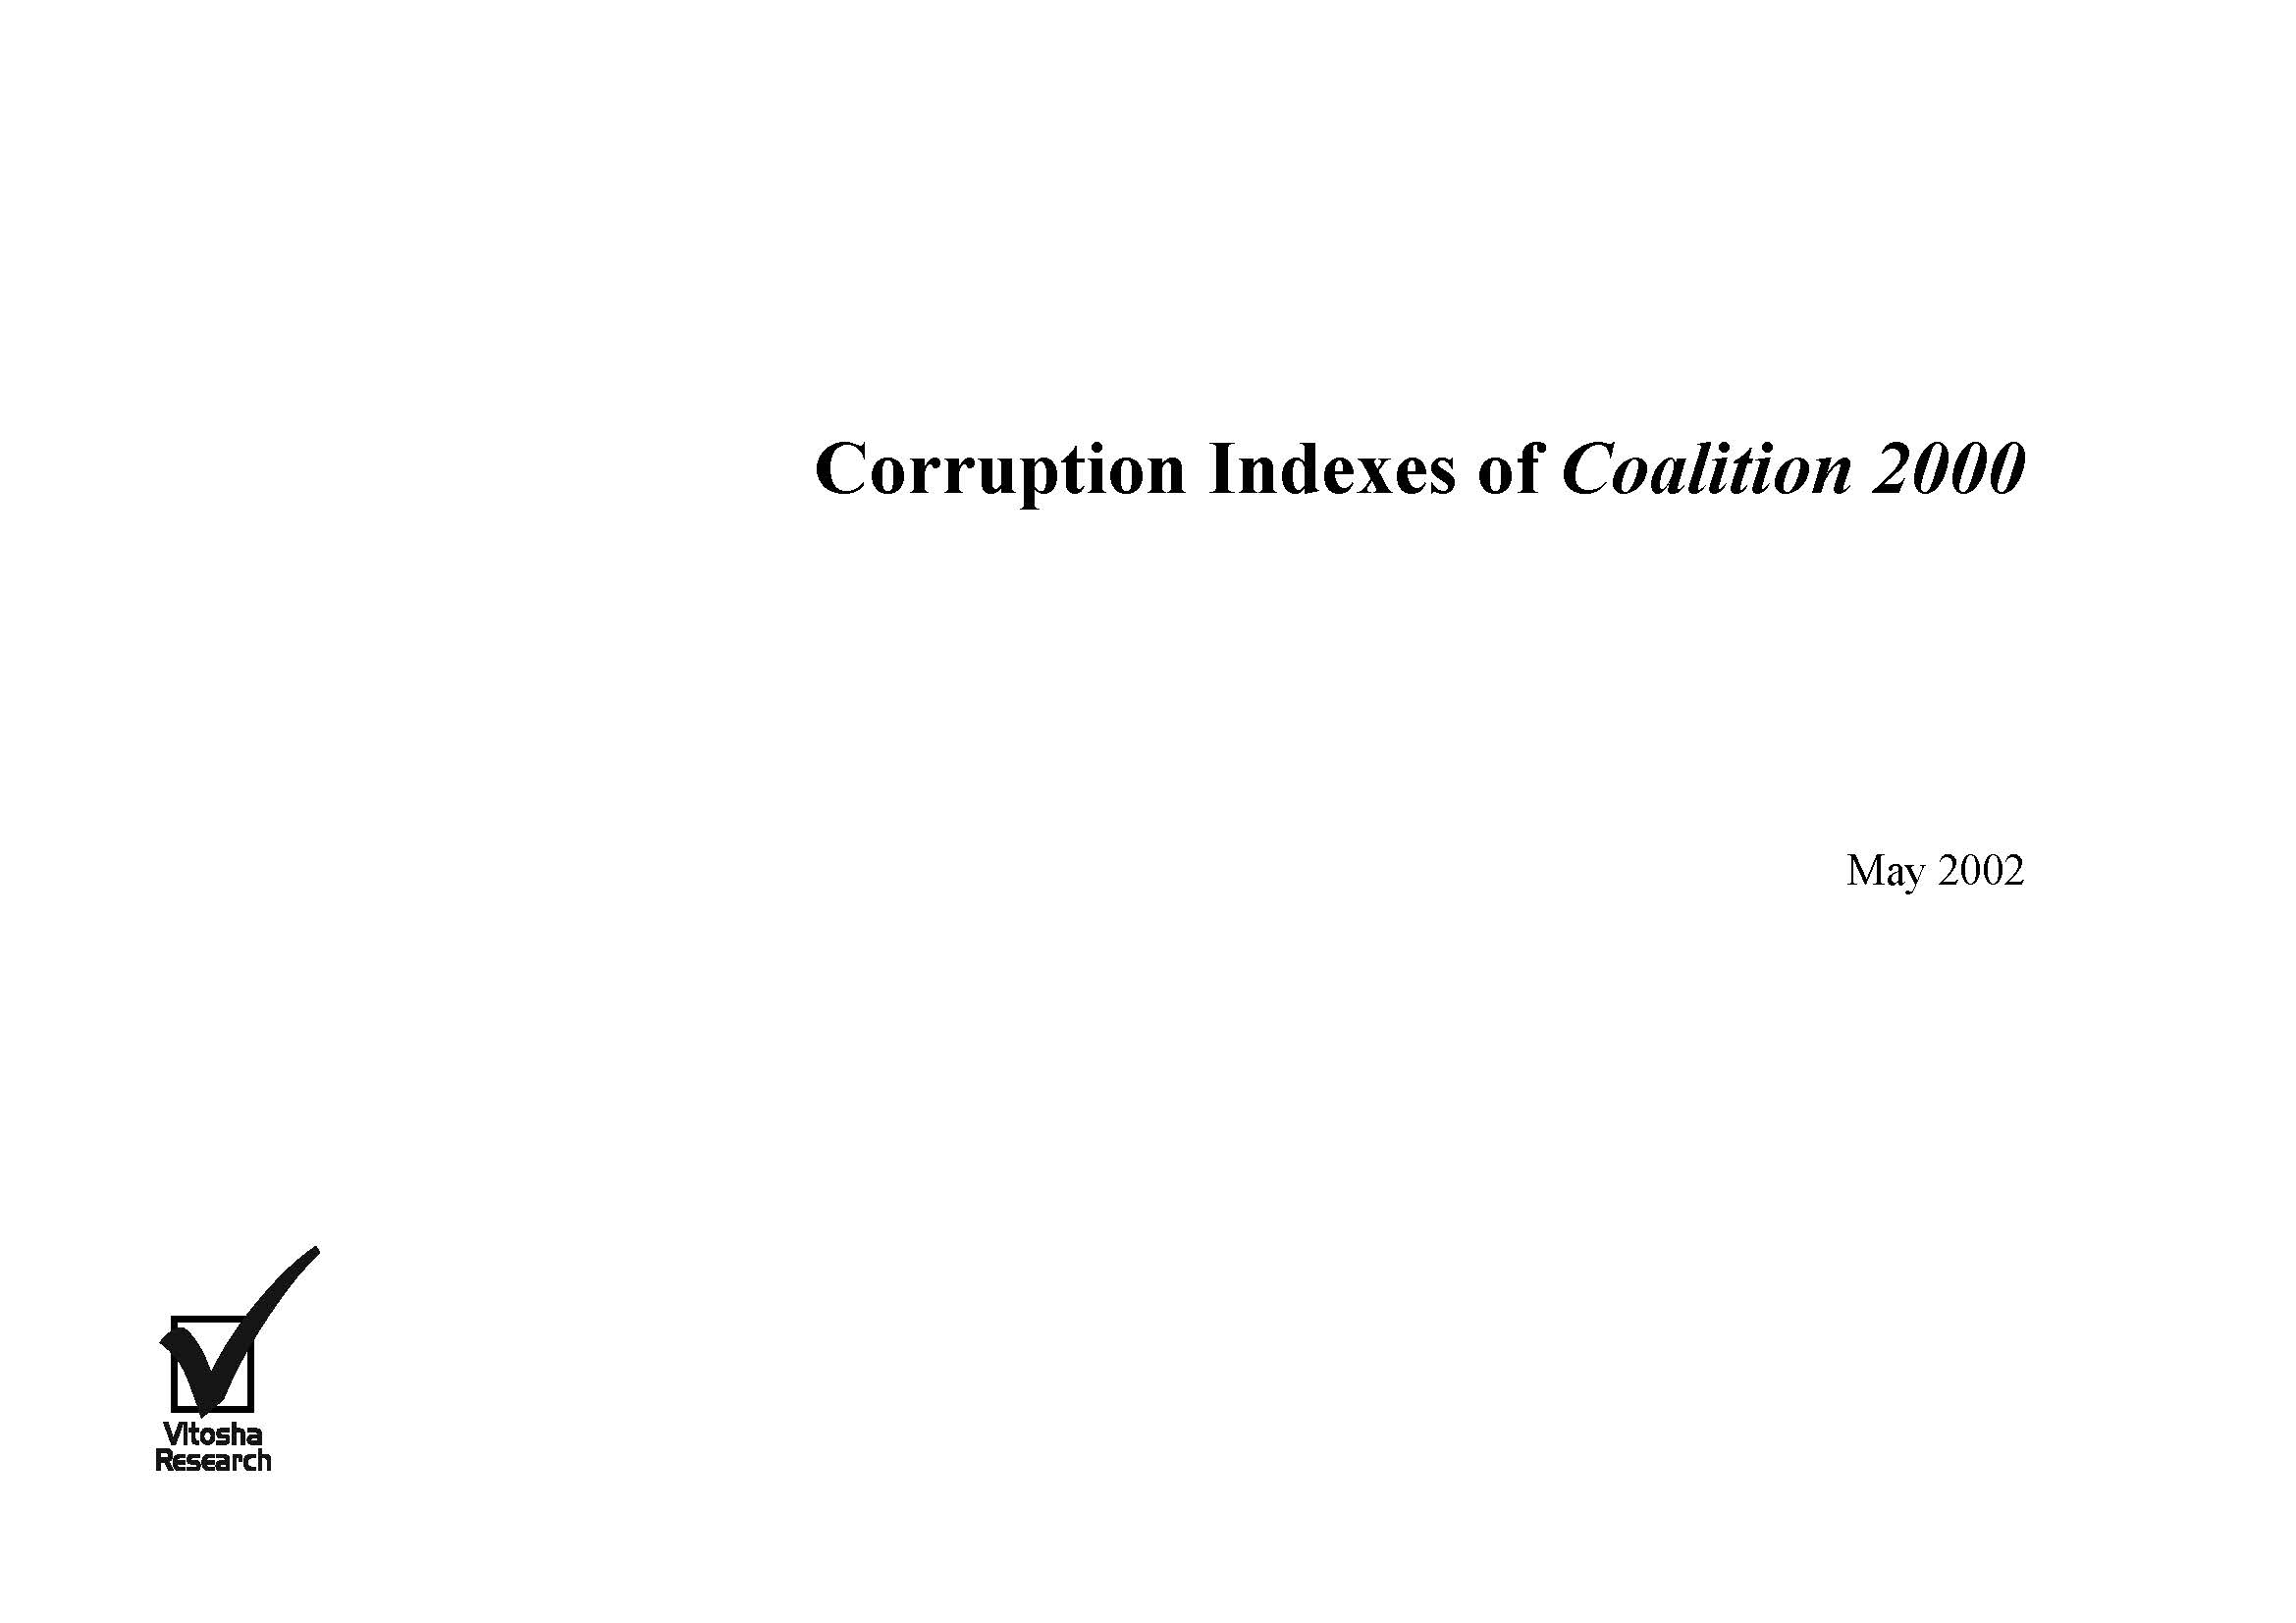 Corruption Indexes of Coalition 2000, May 2002